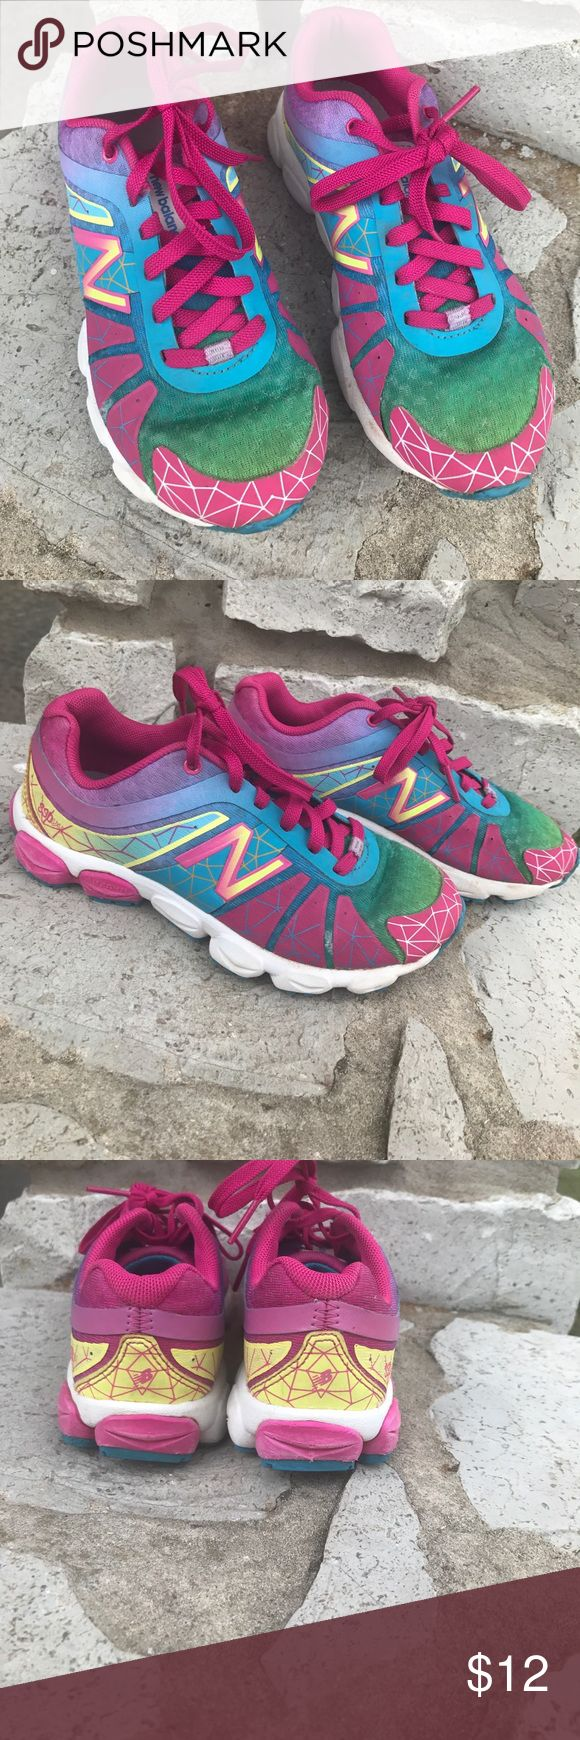 New Balance ABZORB girls shoes Super cute, gently used, girls new balance runners, size 13 New Balance Shoes Sneakers